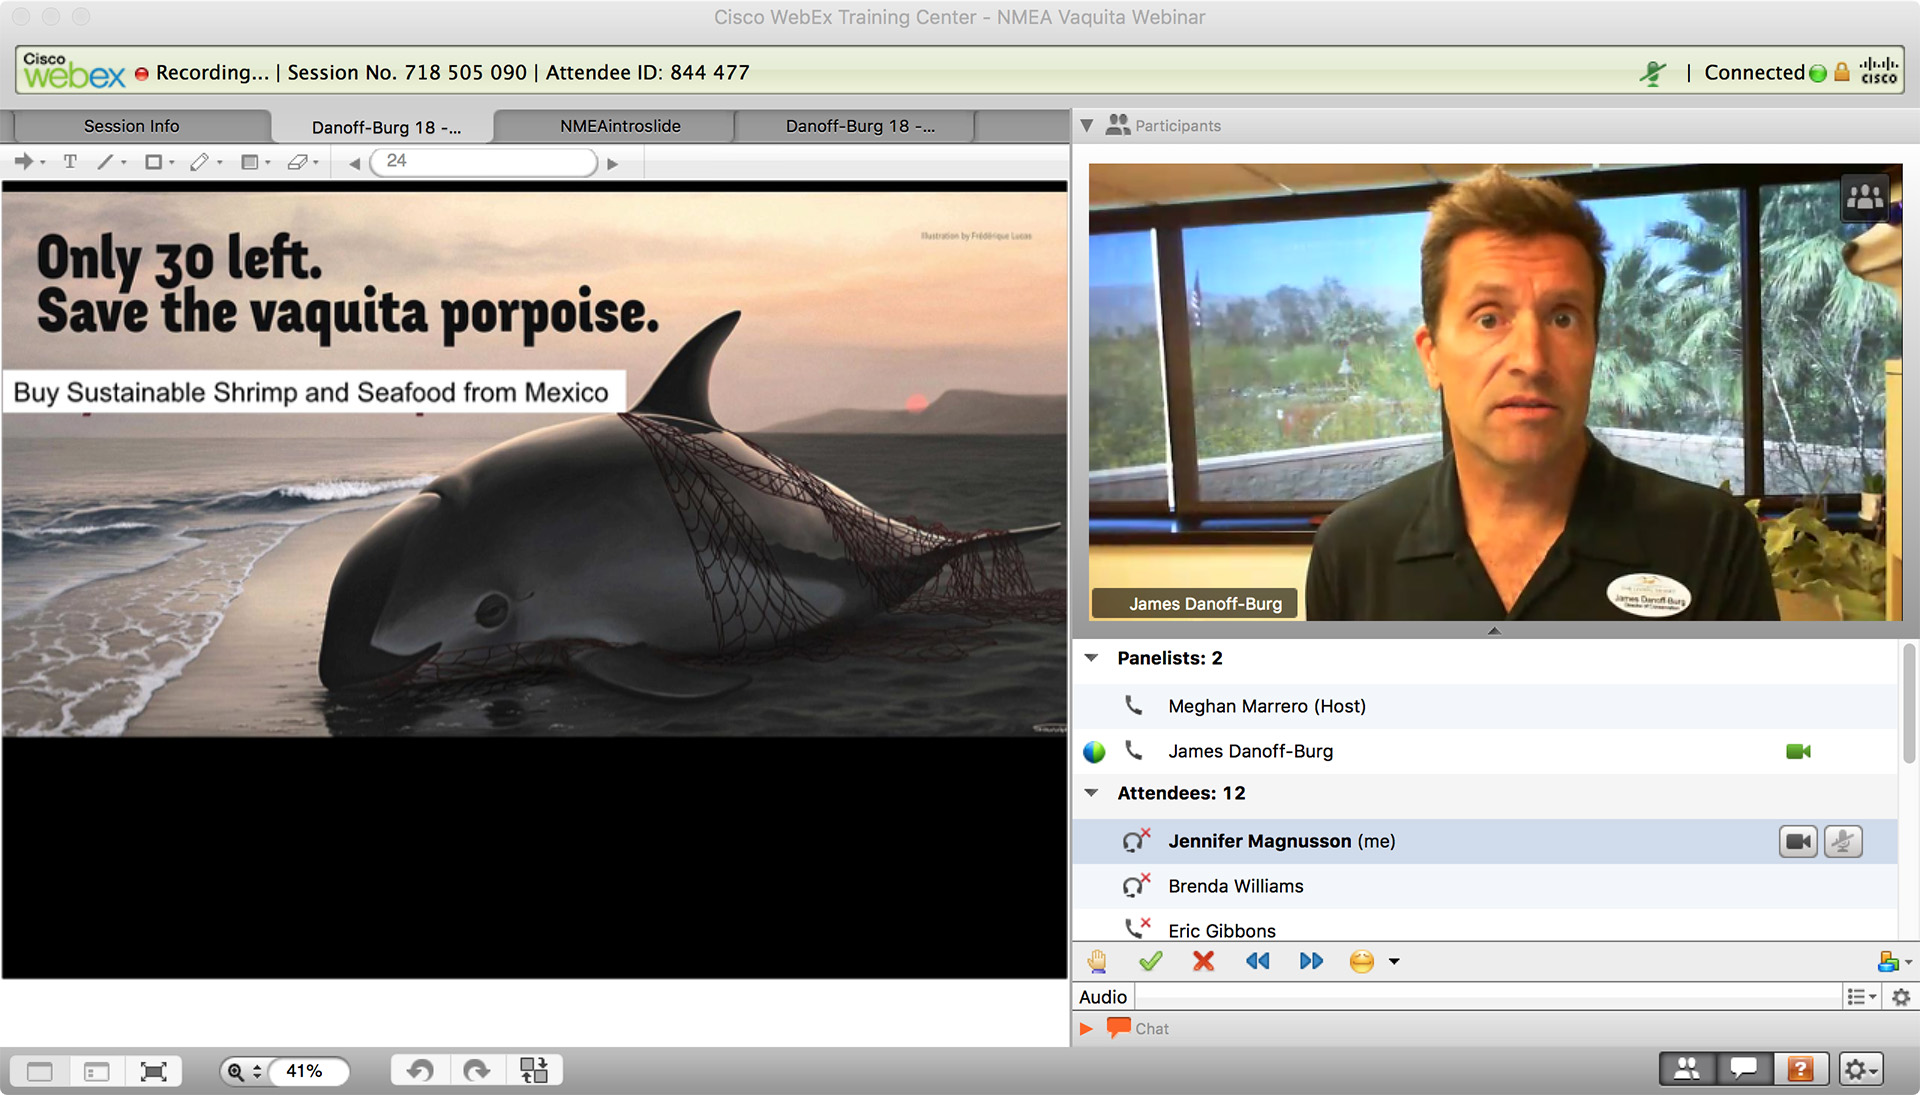 Vaquita-Webinar-screenshot.jpg